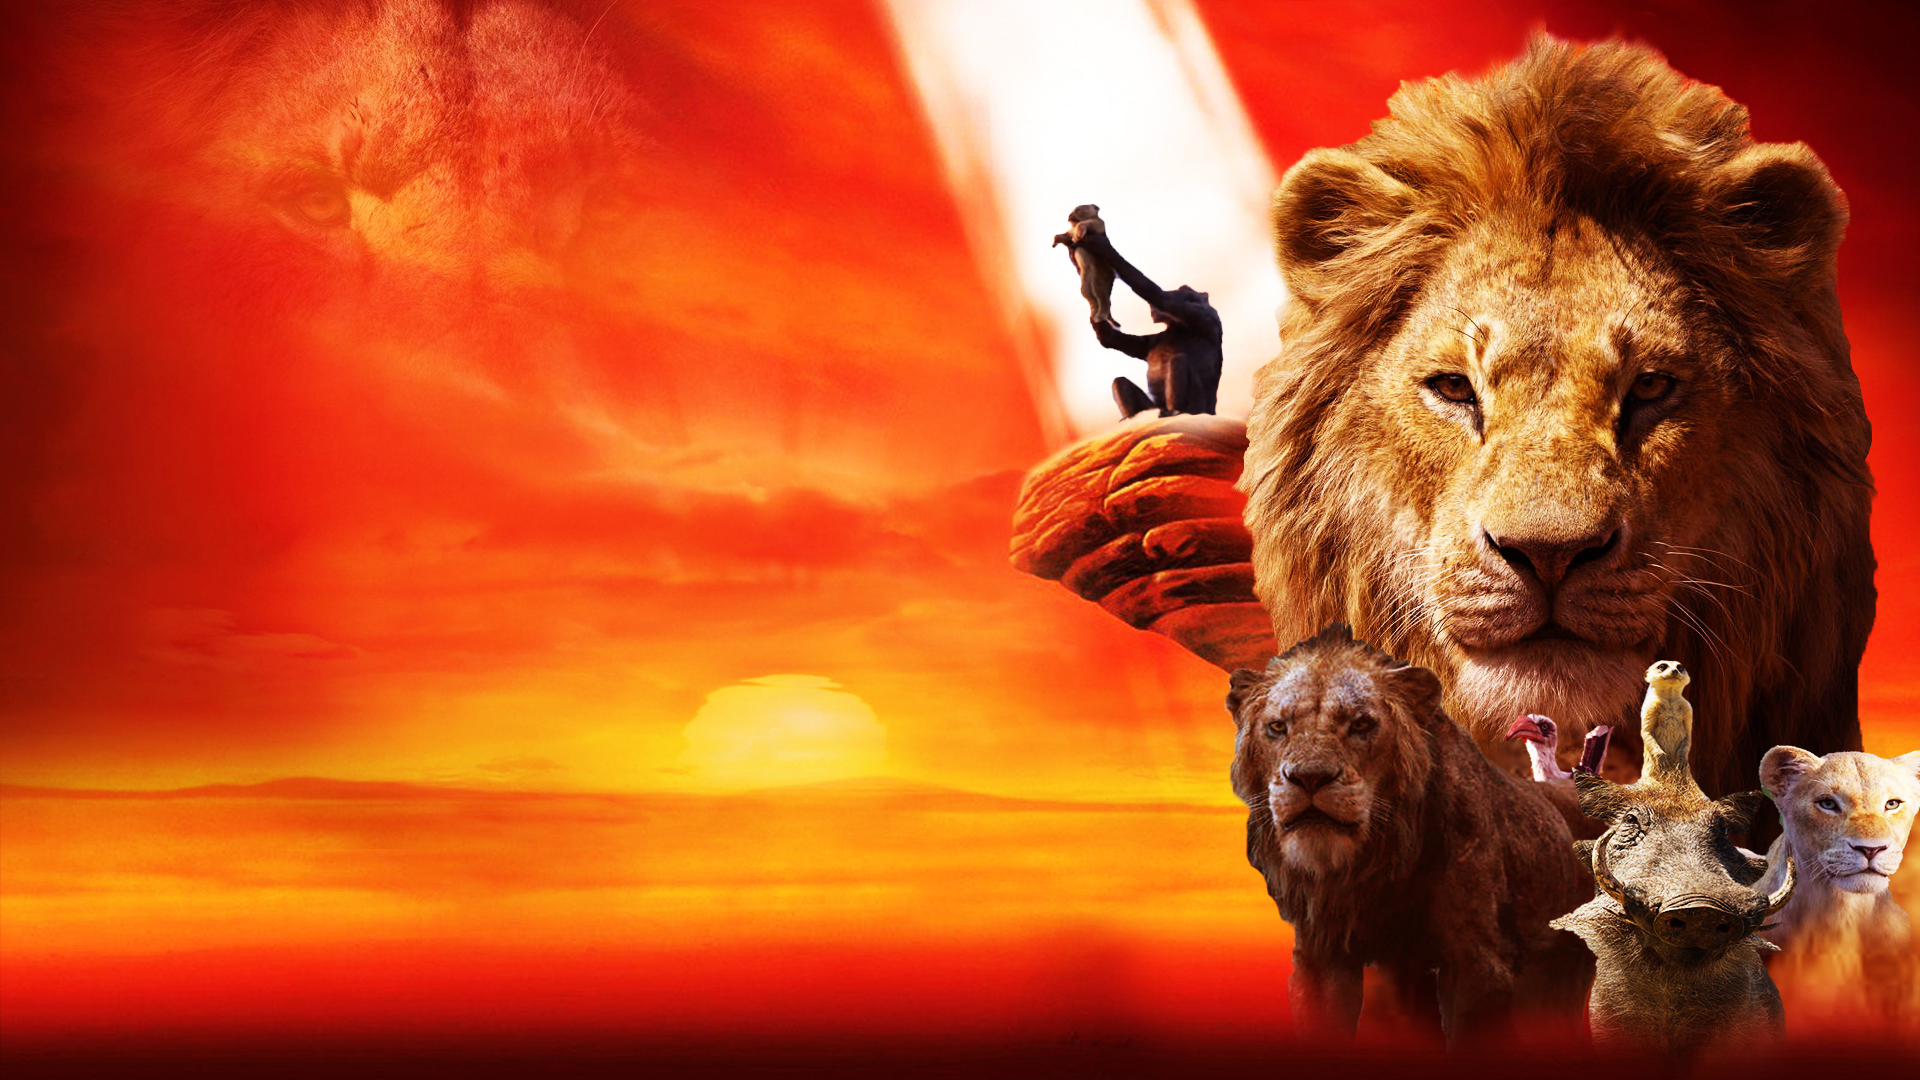 The Lion King 2019 Wallpaper By The Dark Mamba 995 Lion King Wallpapers 2019 2895816 Hd Wallpaper Backgrounds Download